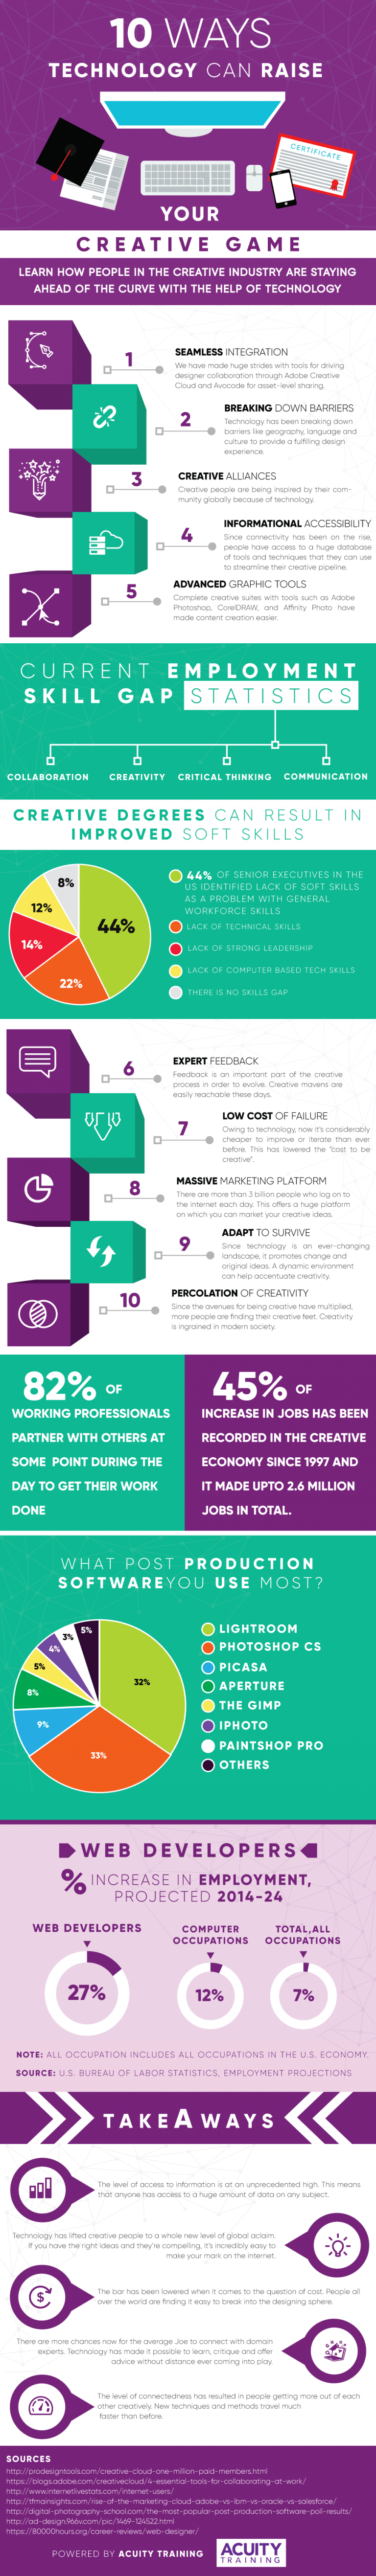 10 Ways Technology Can Raise Your Creative Game Infographic